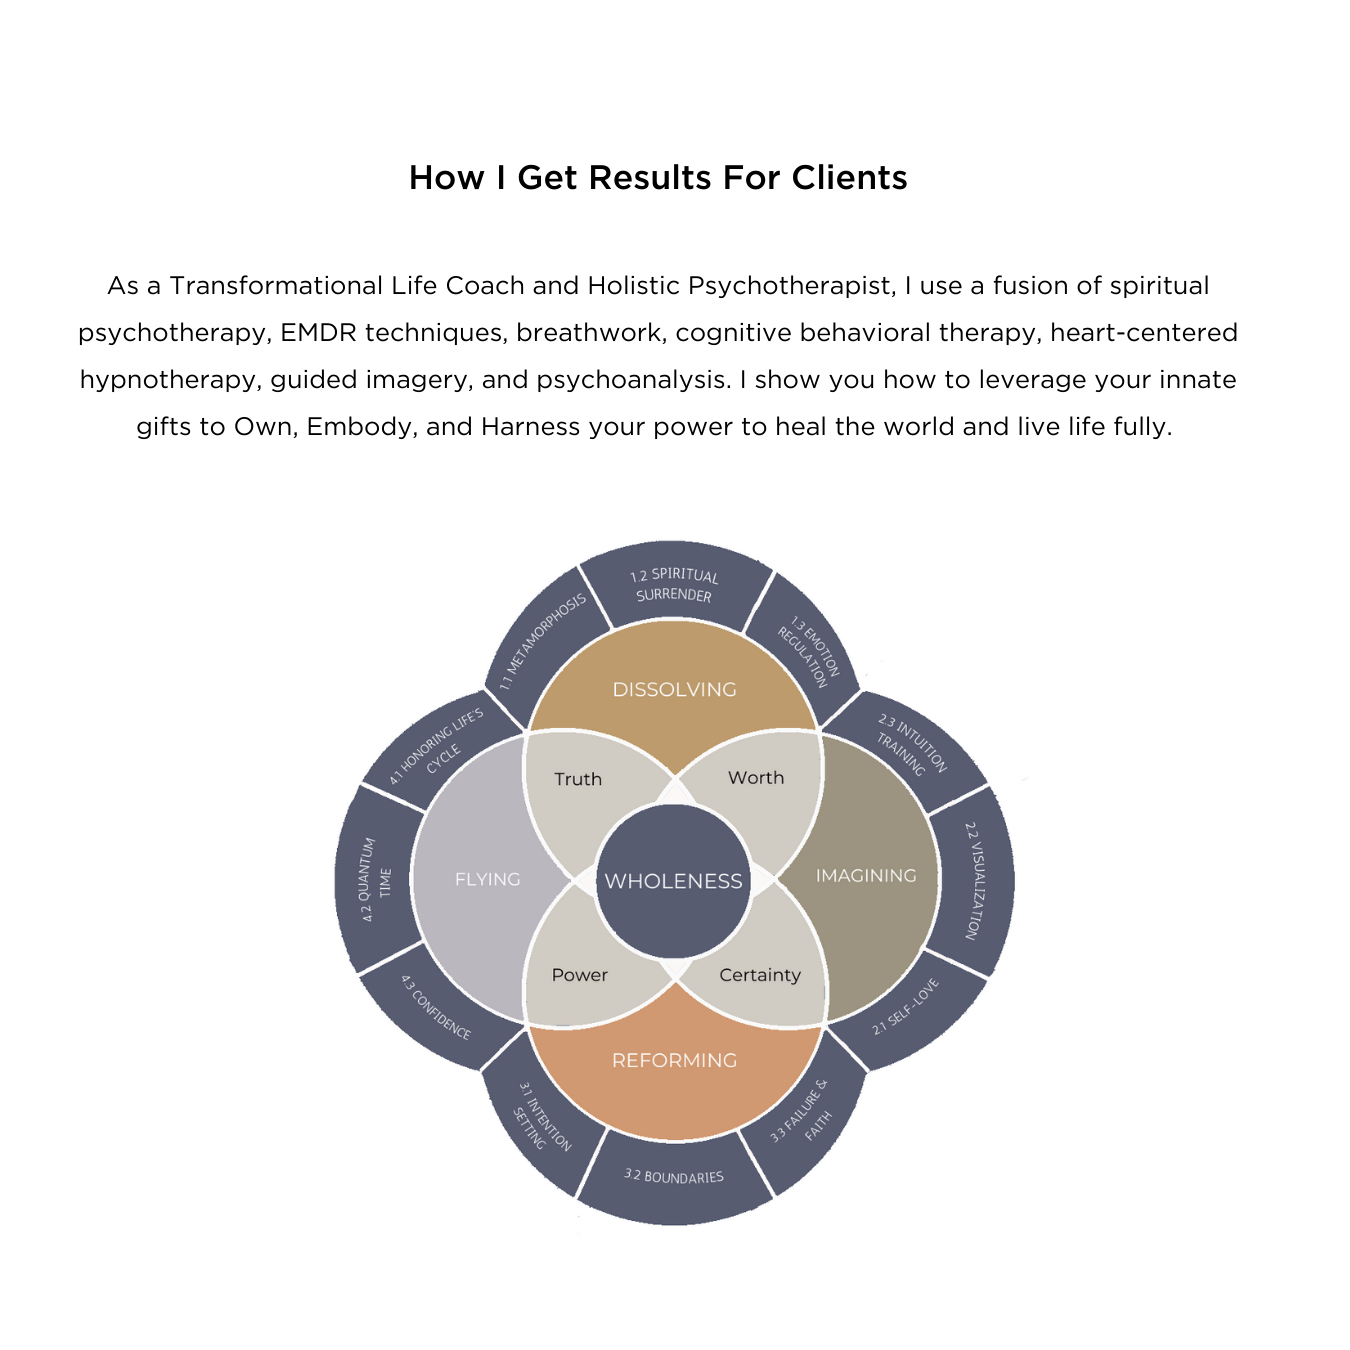 Copy of How I Get Results For Clients